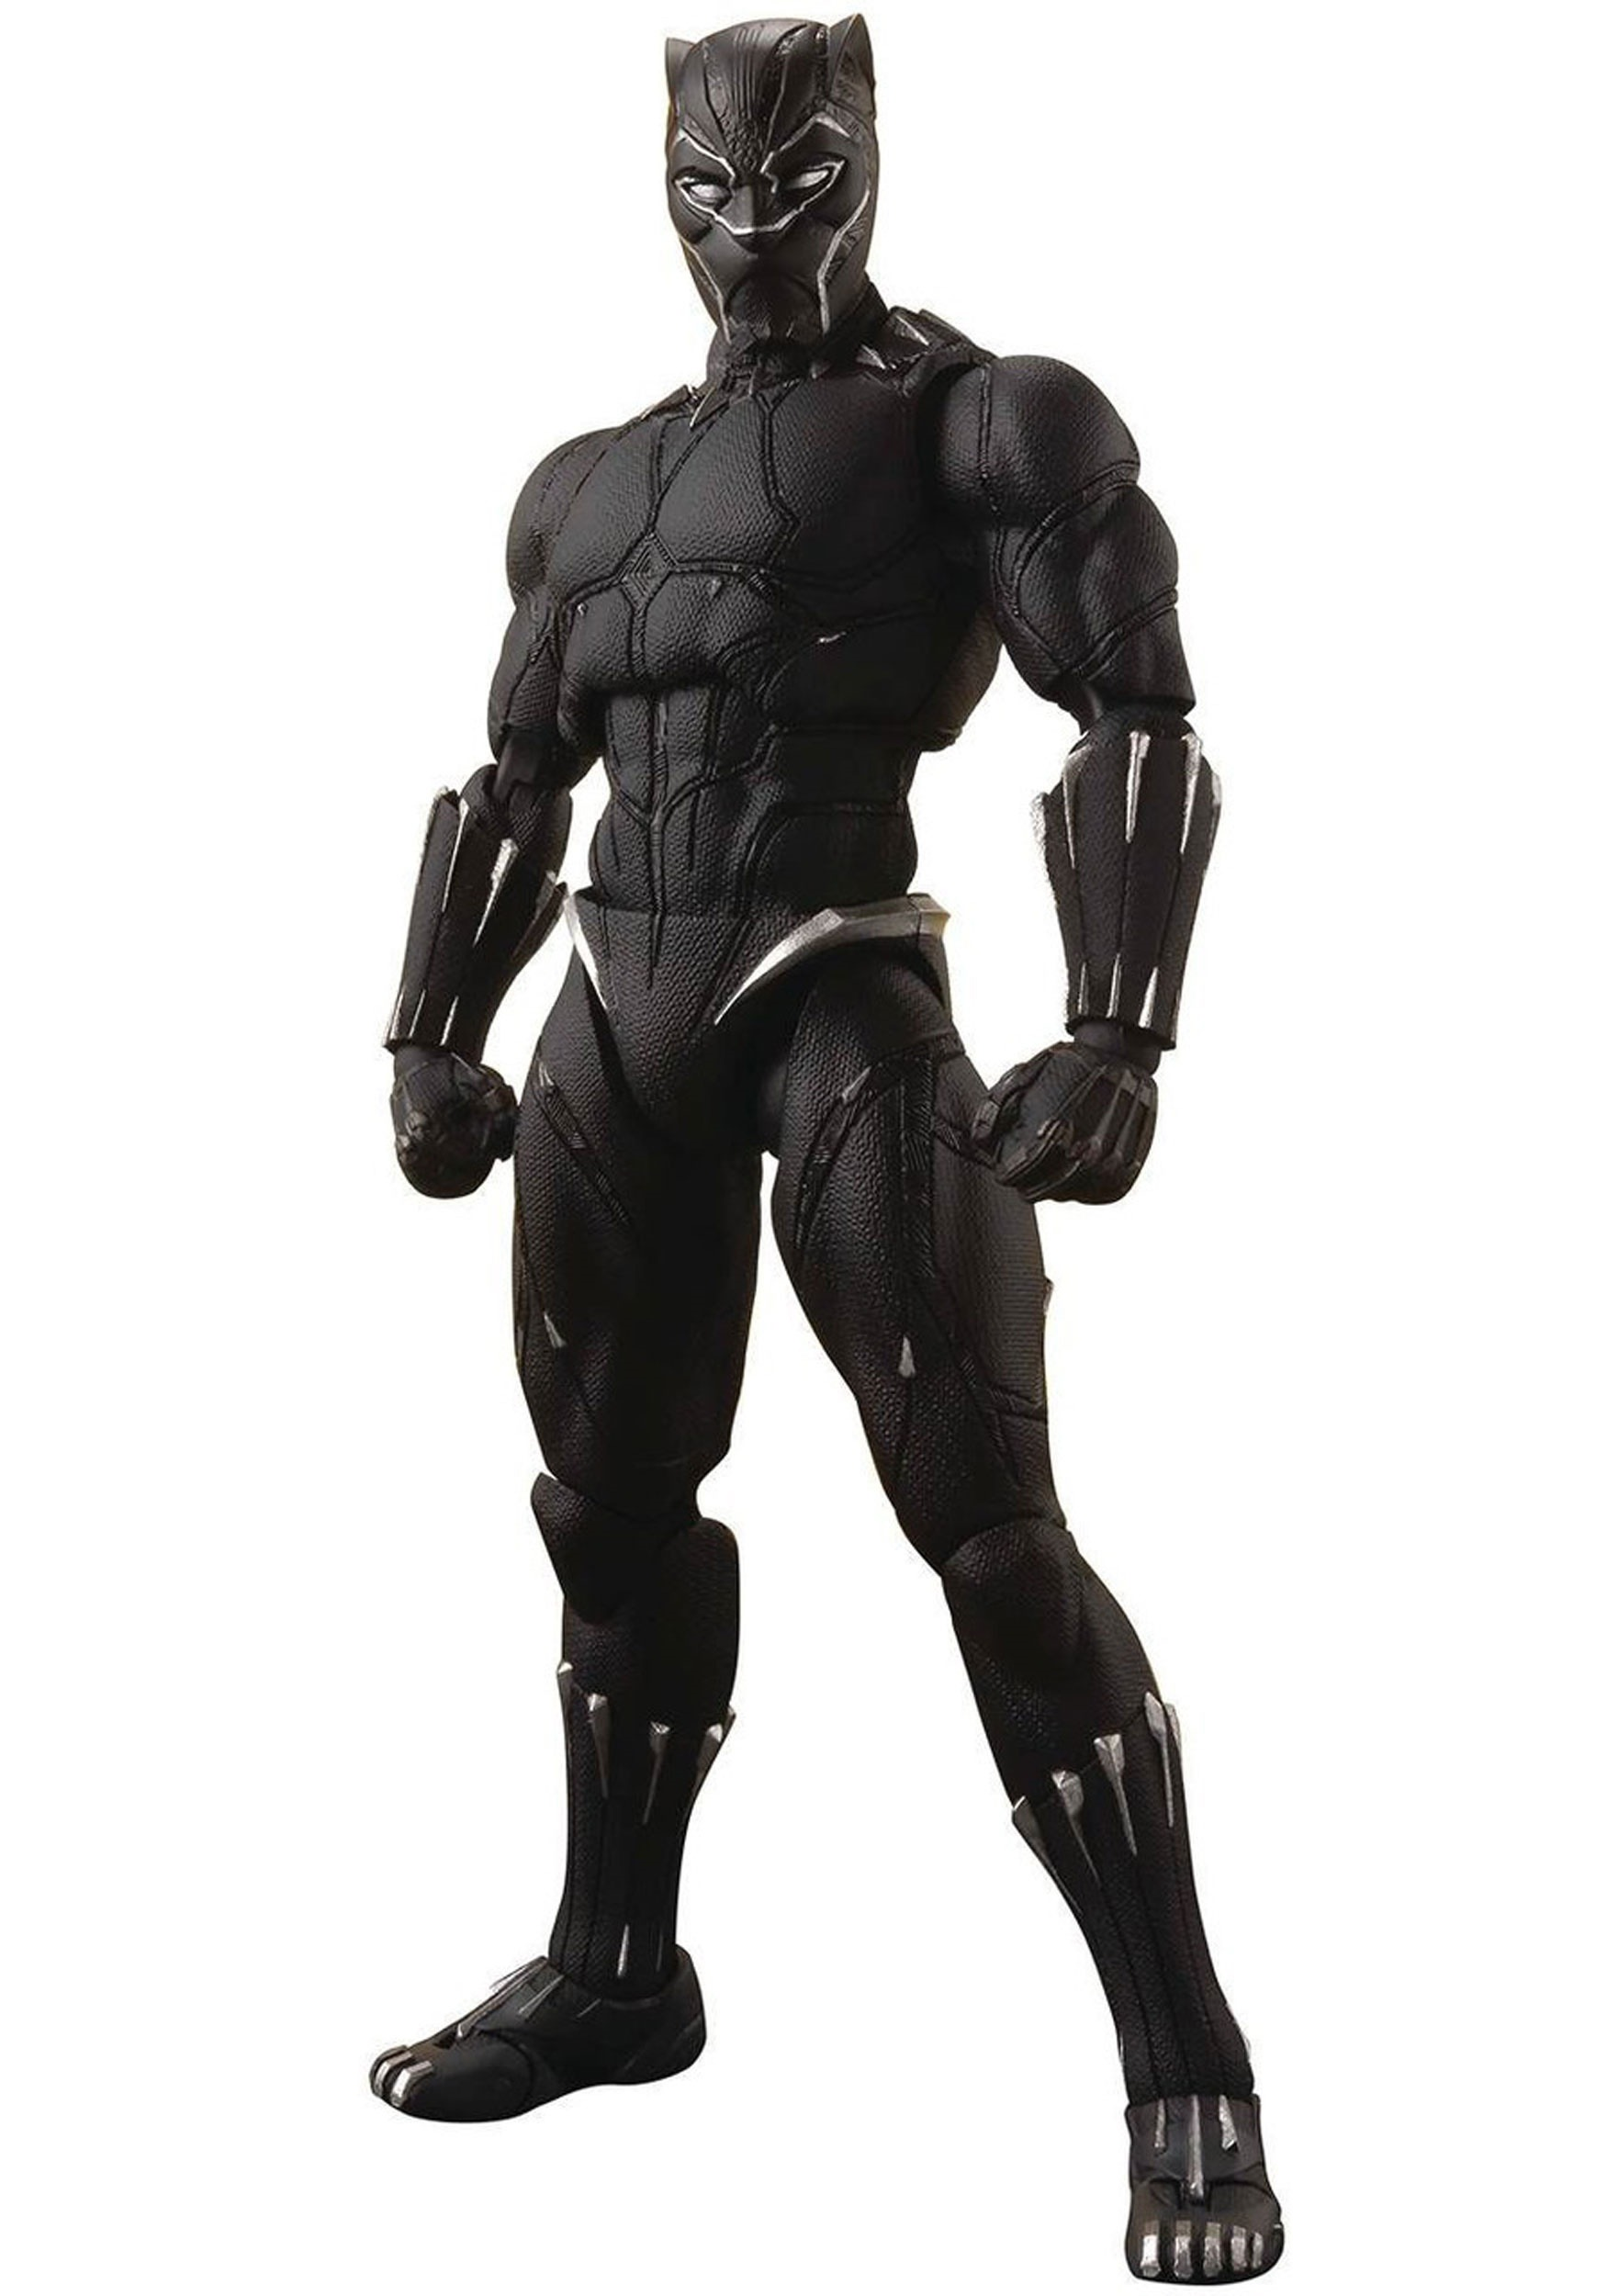 Black_Panther_Bandai_S.H._Figurarts_Action_Figure